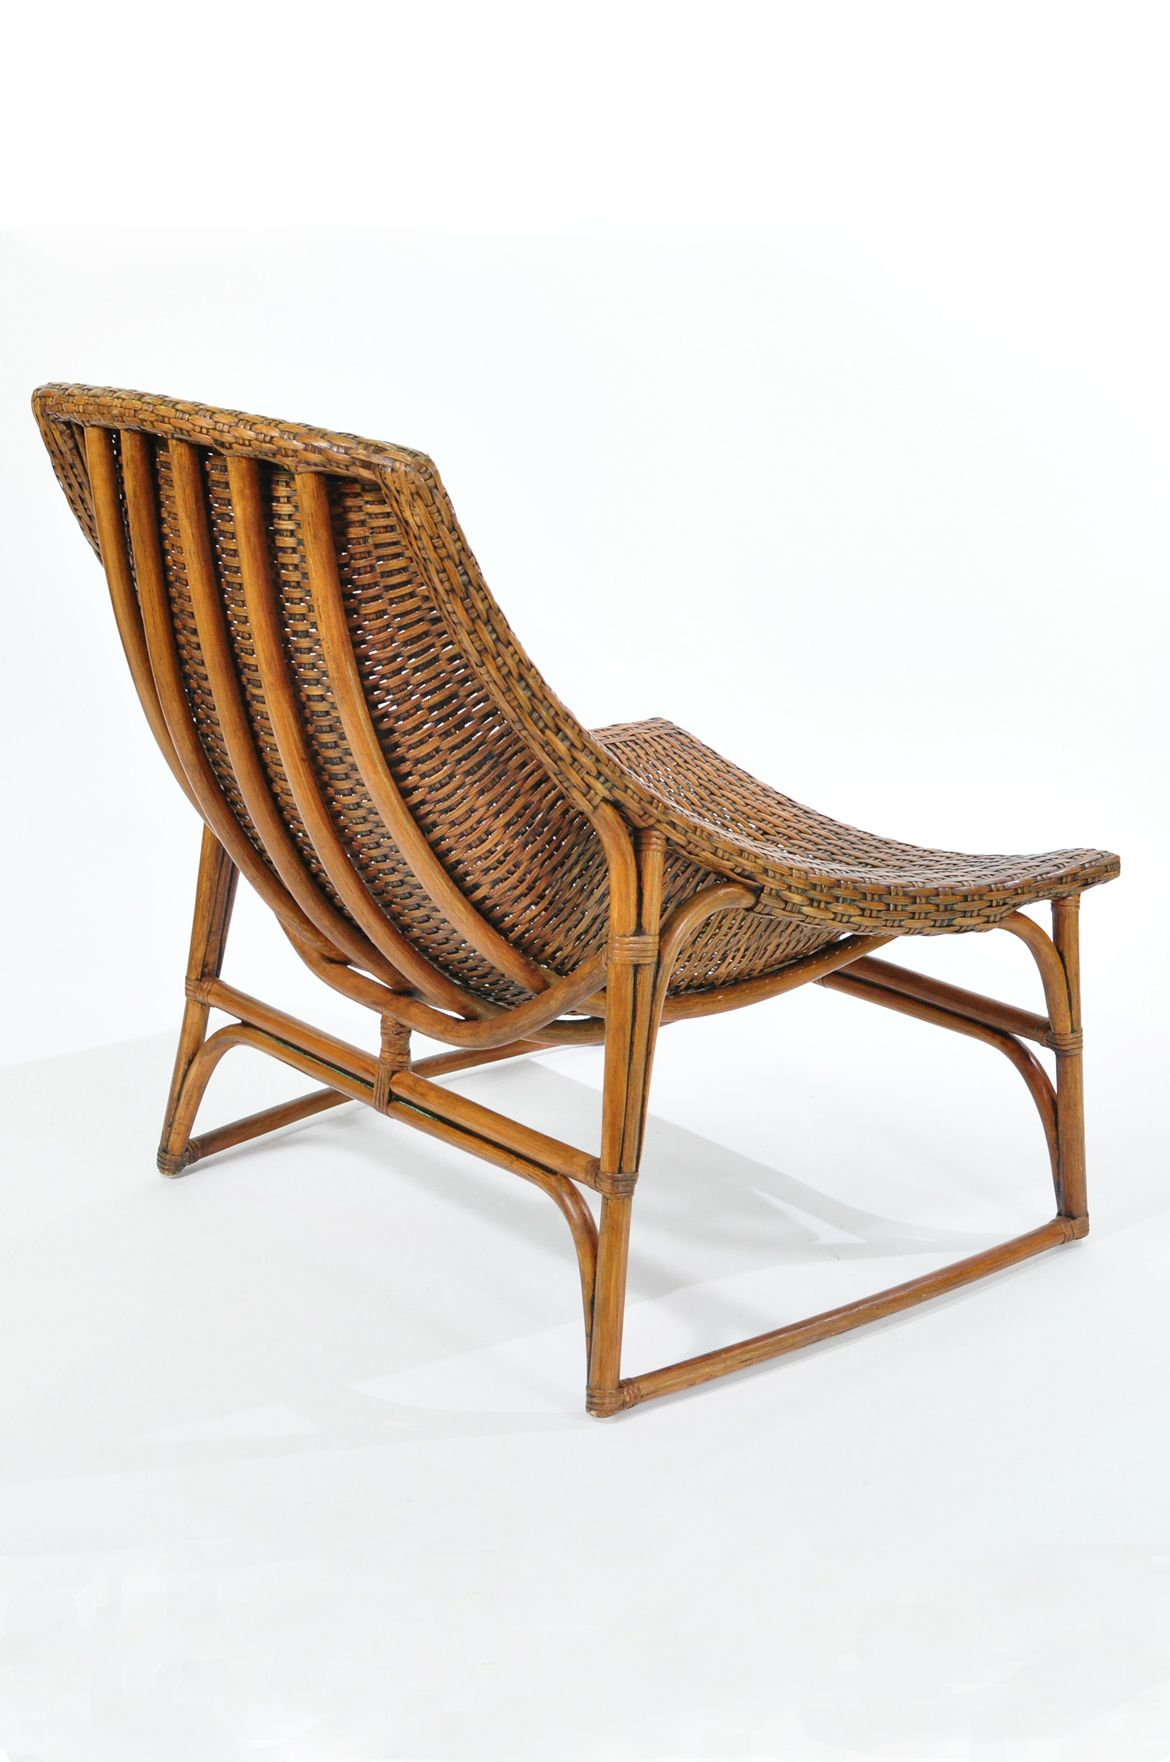 chairs brylanehome oversized rattan wicker recliners whitman chair